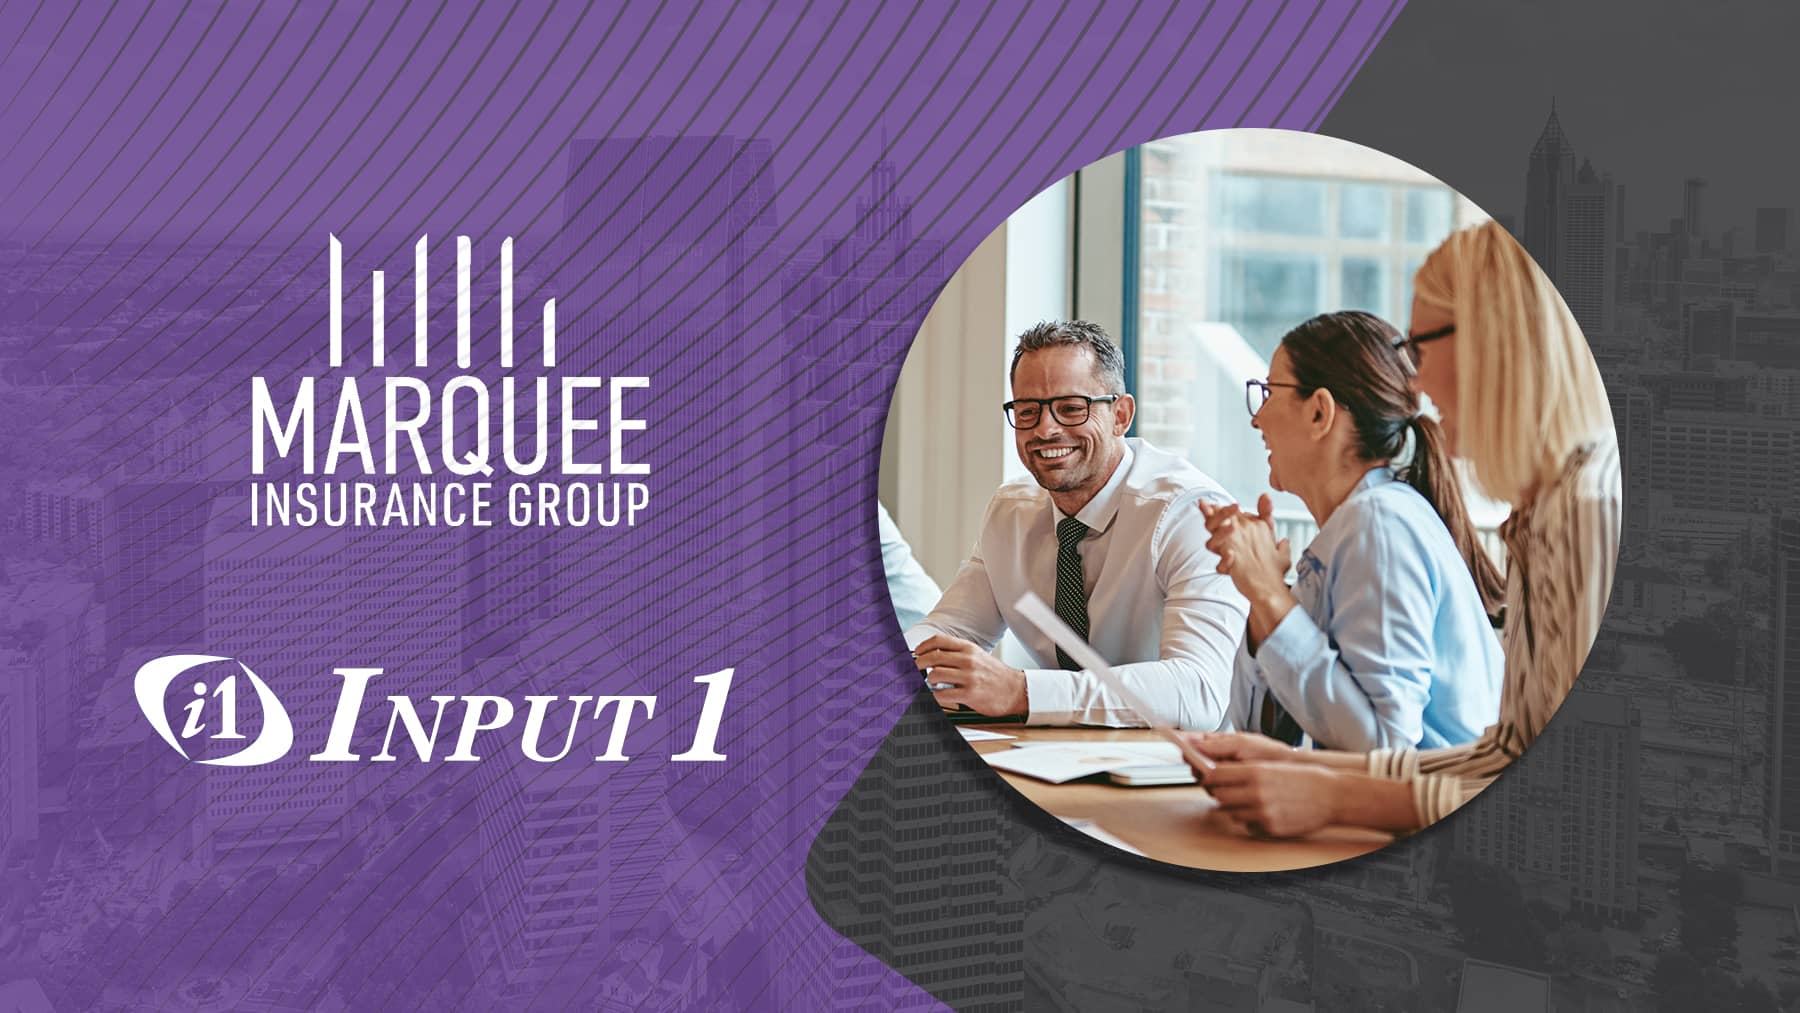 Marquee Insurance Group and their newly created subsidiary, PreFi, LLC, selects Input 1 as a servicing partner for its new Premium Finance Business